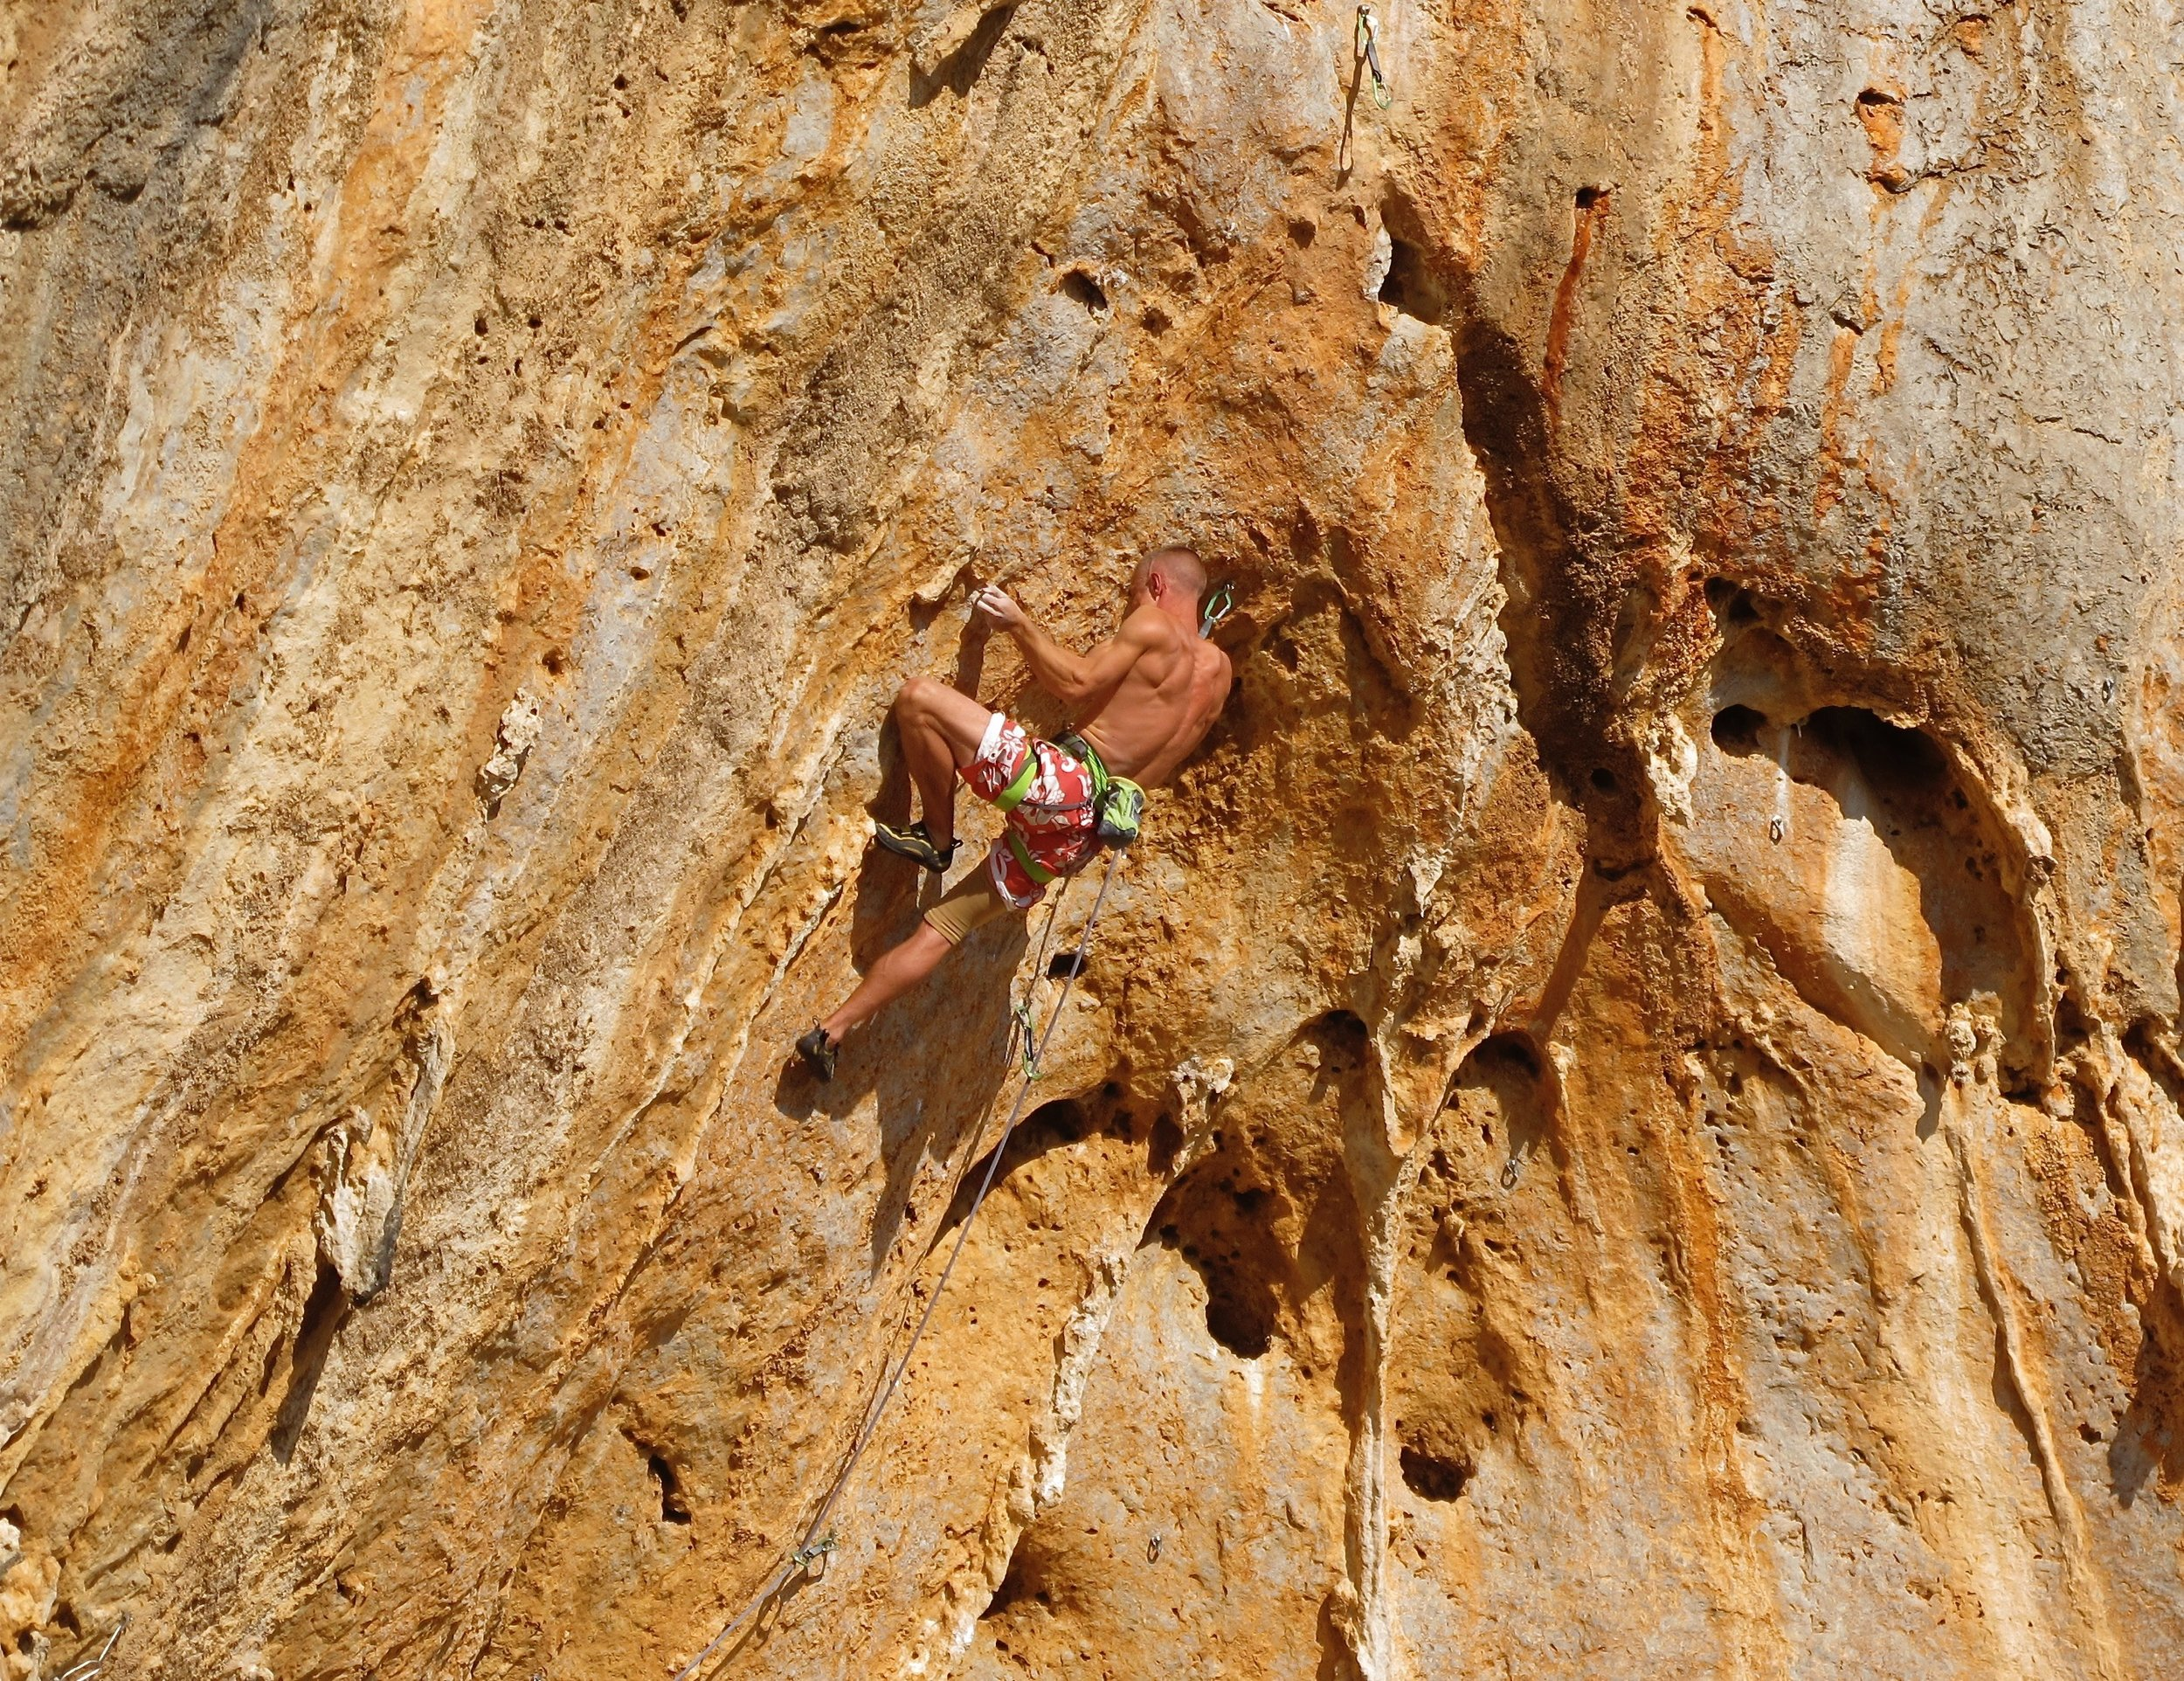 Blame the Machine 8a, Arginonta Skyline, Kalymnos